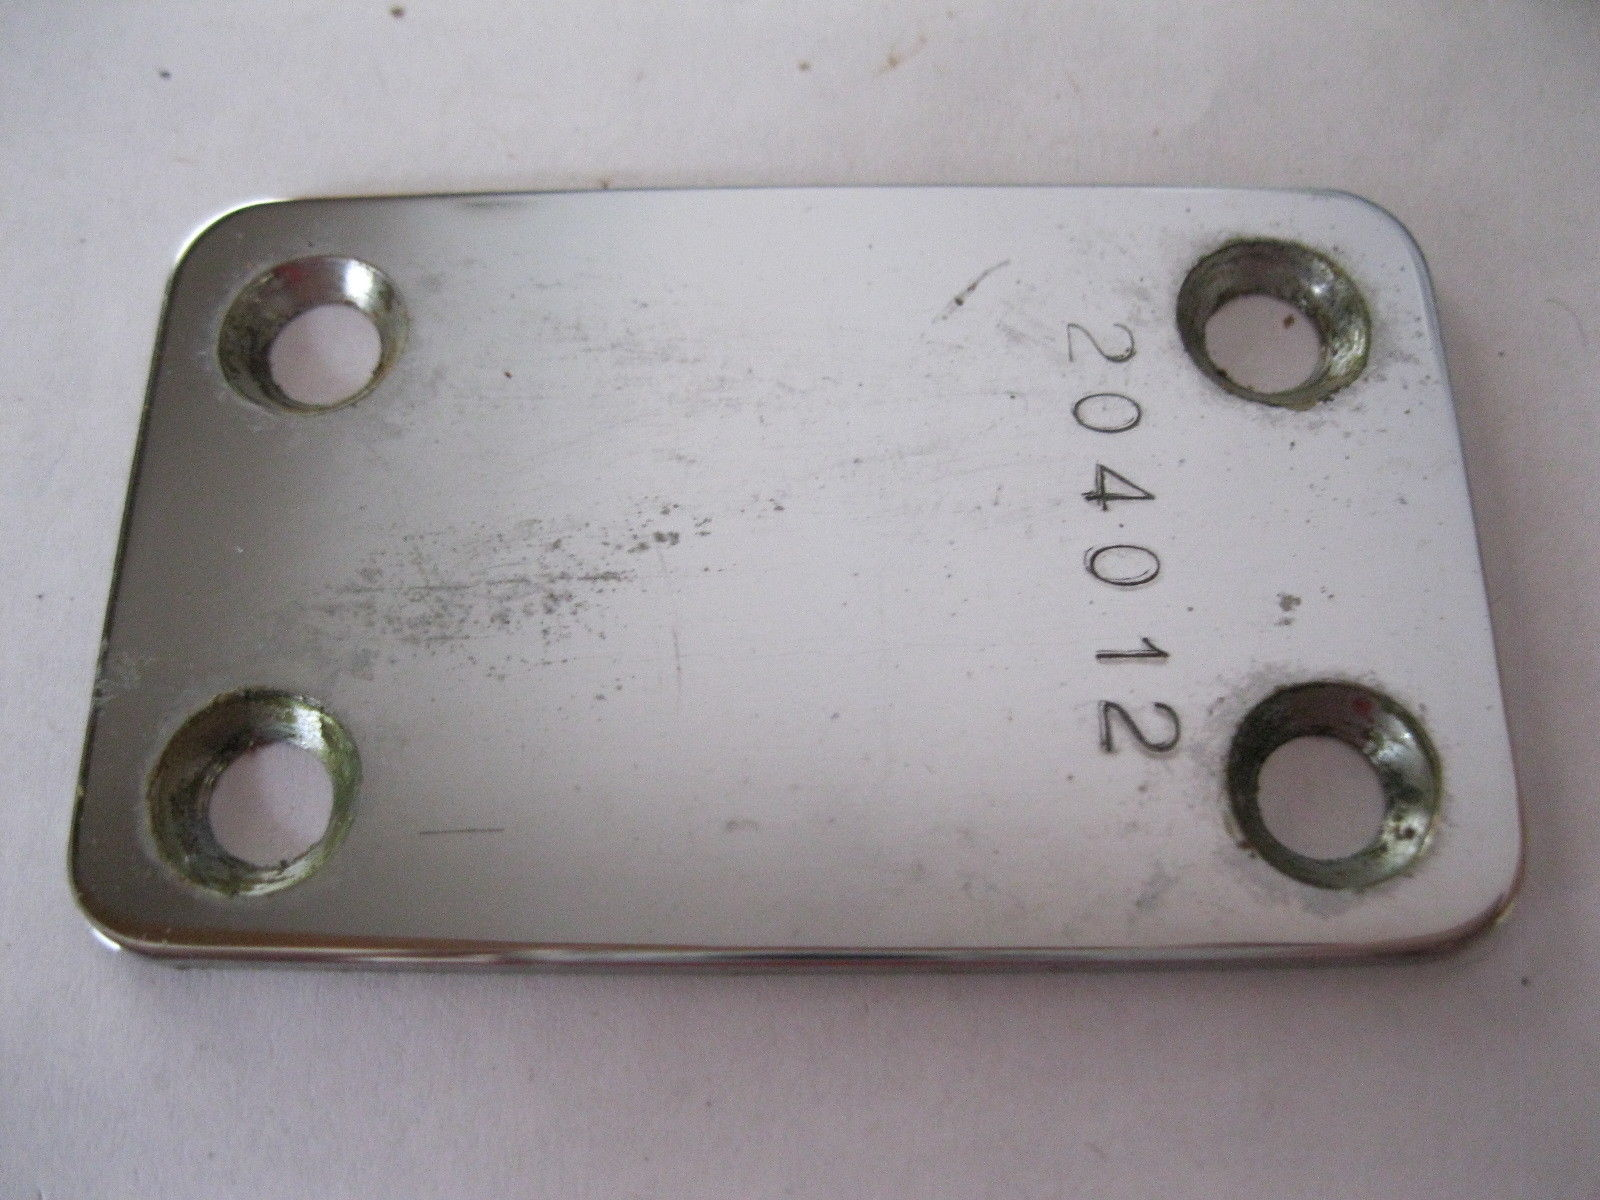 Vintage Vox NECK PLATE Phantom Mark Spitfire TearDrop Guitar